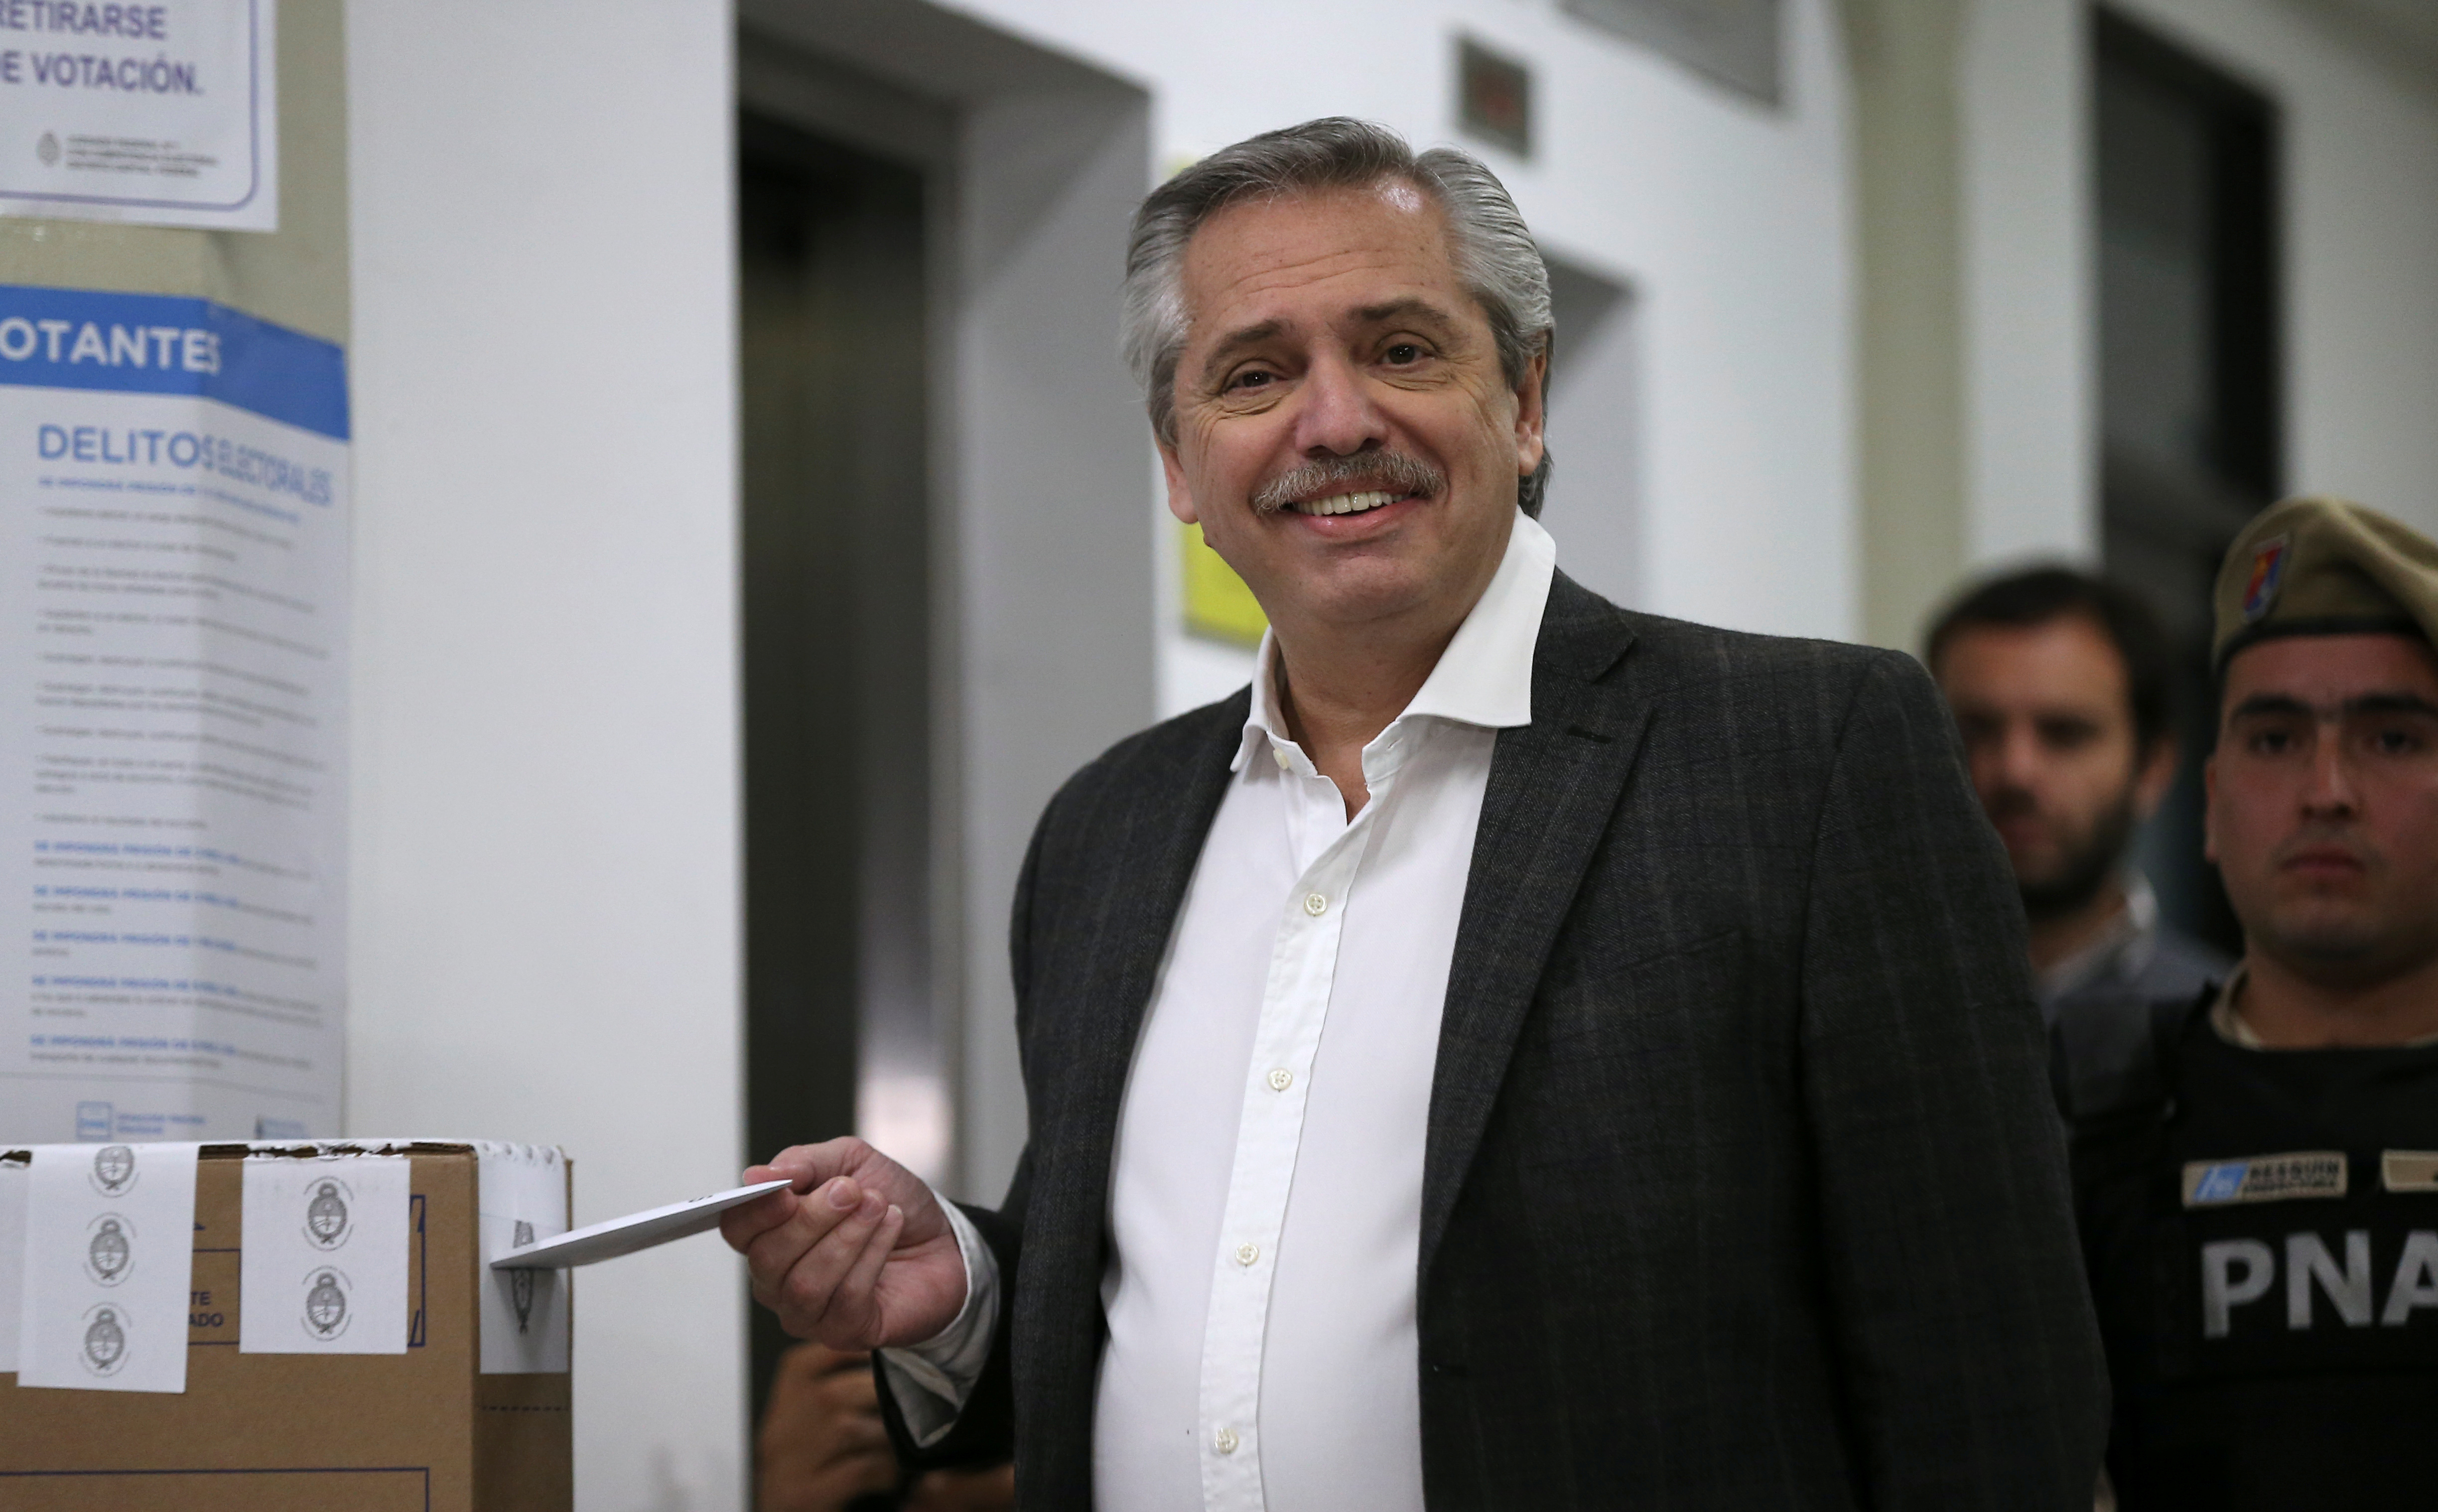 Presidential candidate Alberto Fernandez reacts as he casts a vote at a polling station during the primary elections, in Buenos Aires, Argentina, August 11, 2019.  REUTERS/Agustin Marcarian